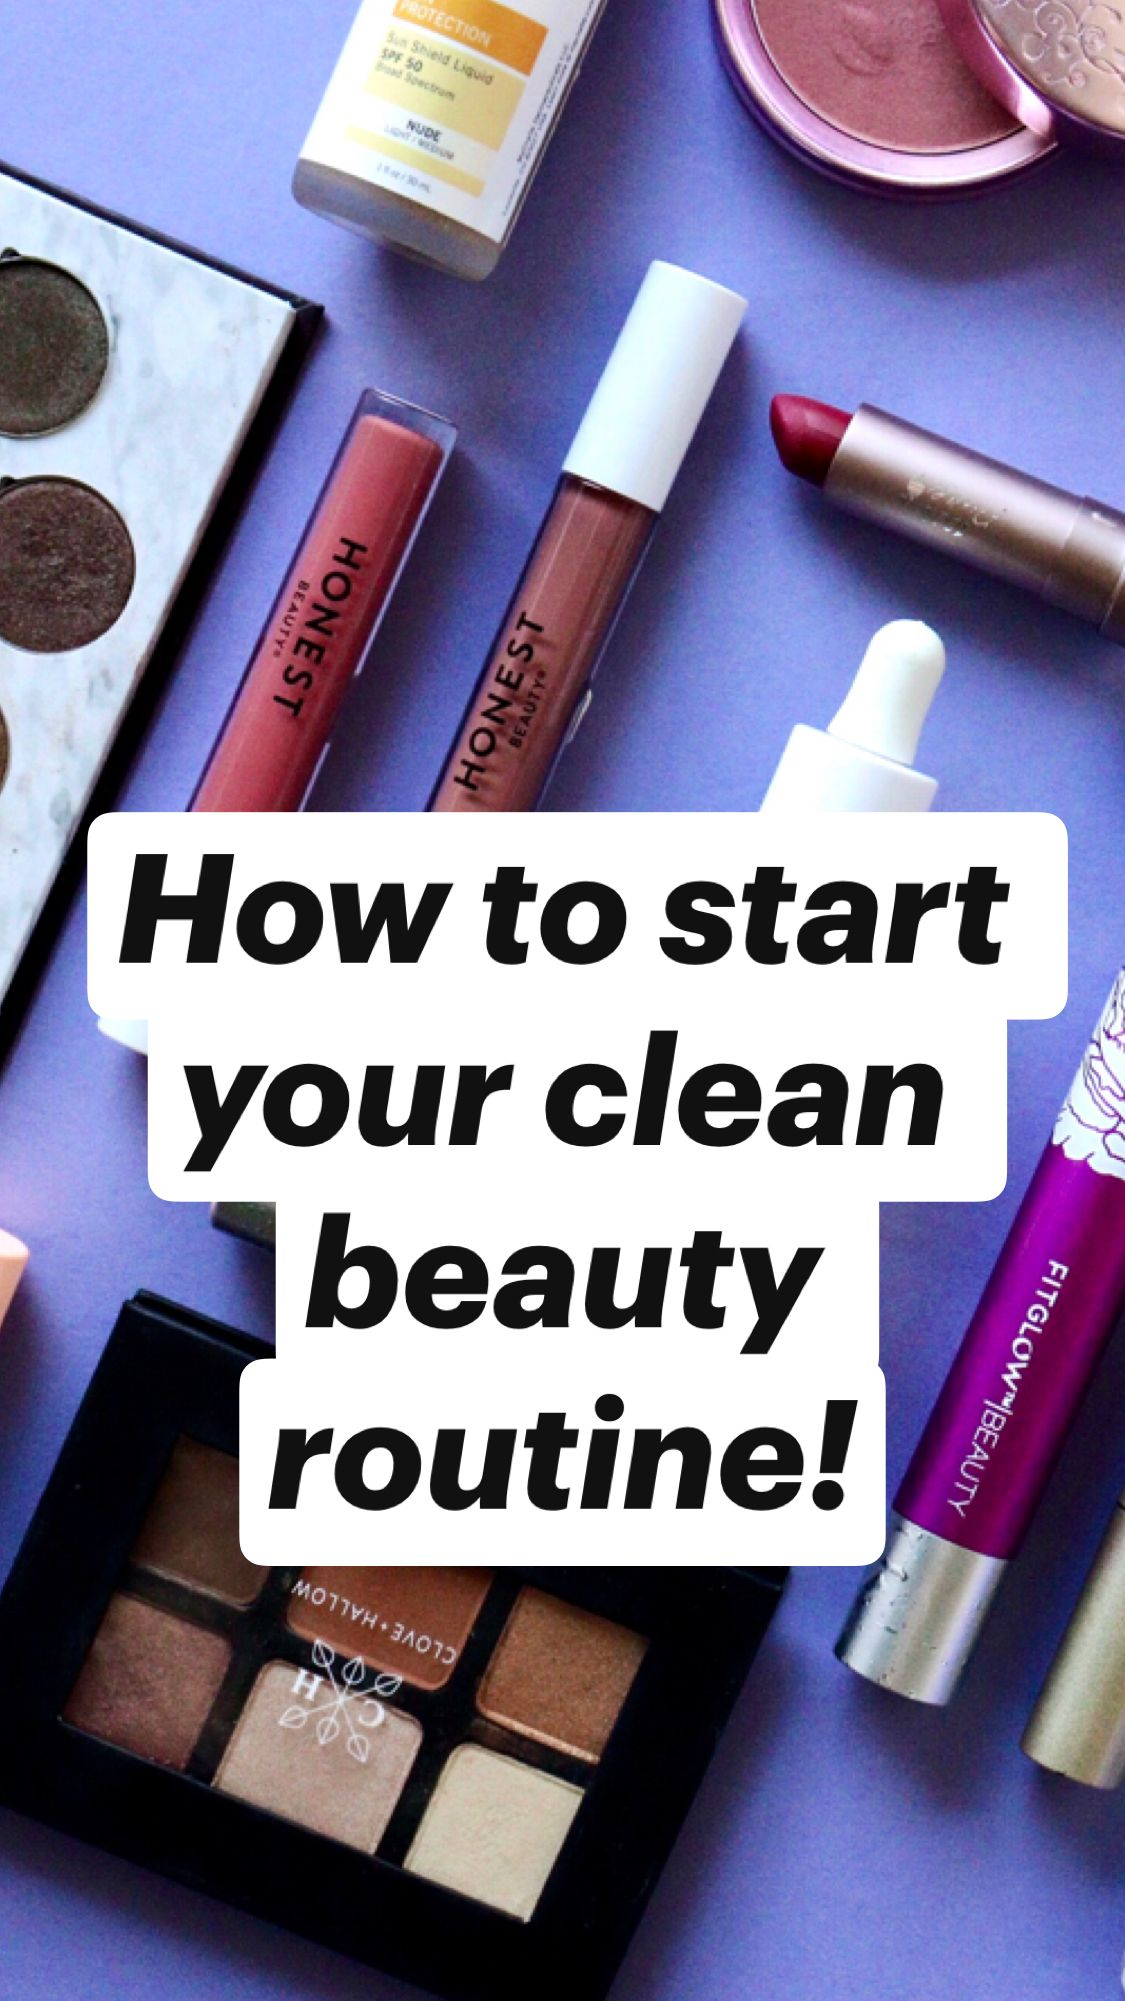 How to start  your clean beauty routine!